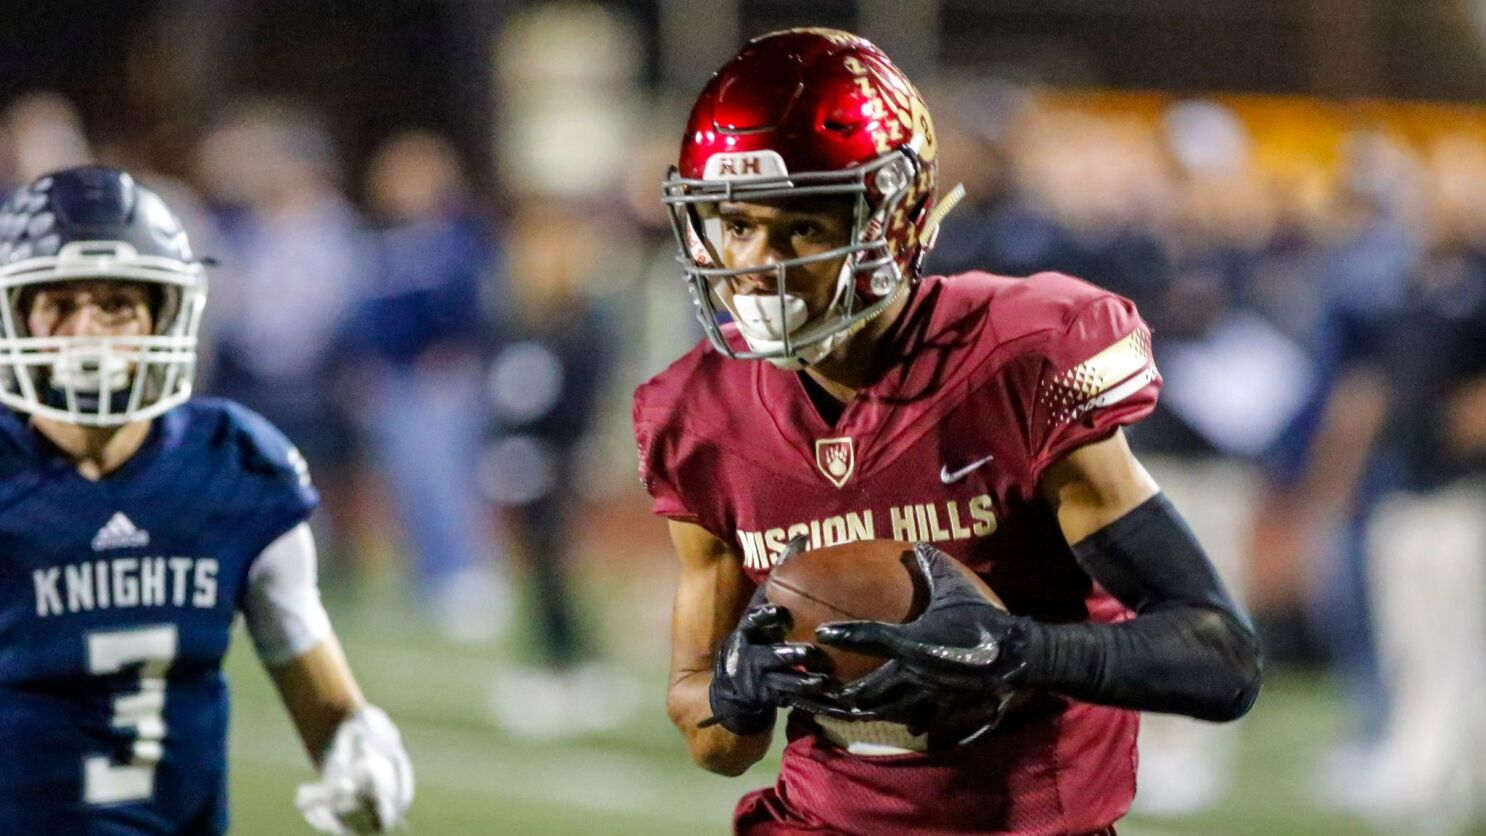 Mission Hills Receiver Olave Commits To Ohio State The San Diego Union Tribune